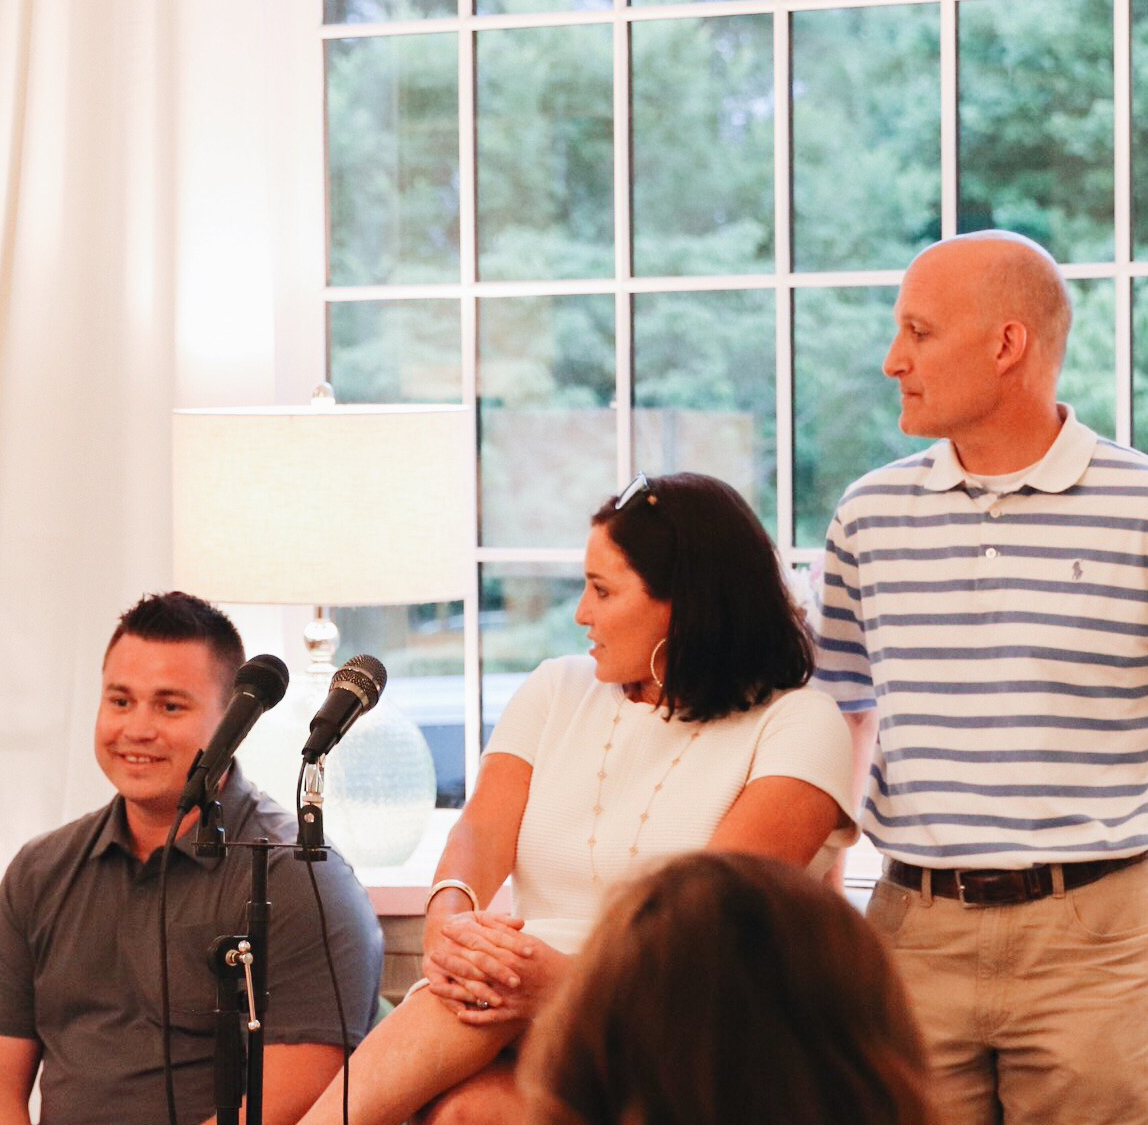 Lynn's Adoption StoryPart 2 - Ten years ago, Lynn reconnected with her biological son she had placed for adoption after a teenage pregnancy. This Q&A session with Lynn and Zach followed the story of how adoption changed her life. You can listen to that story (Part 1) in Episode 52,